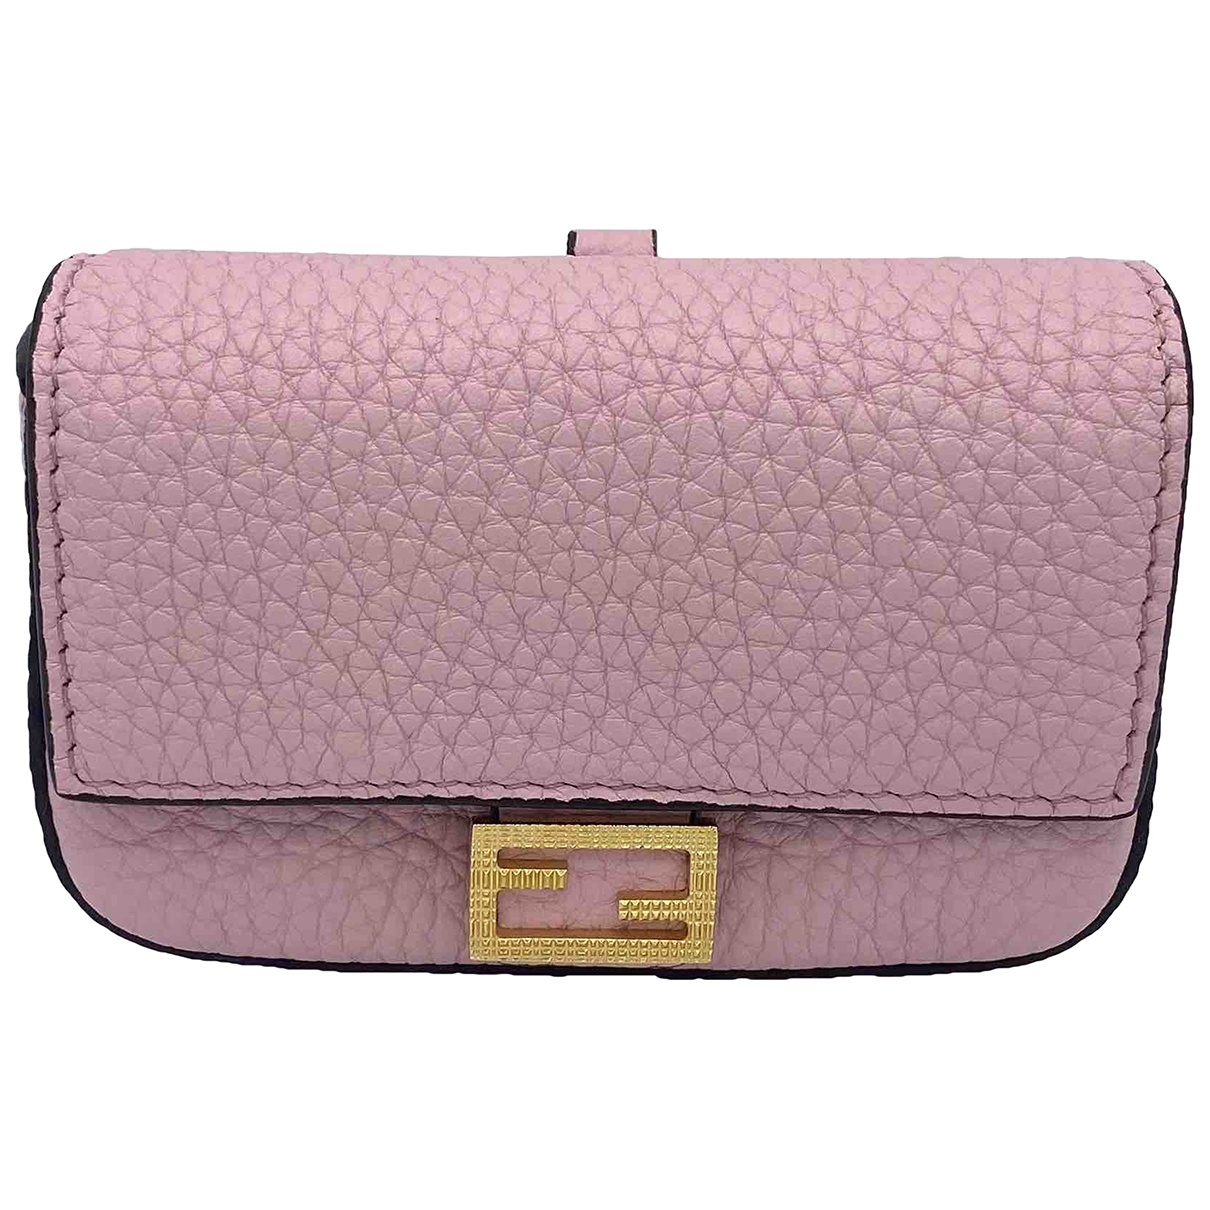 Fendi N Pink Leather Purses, wallet & cases for Women N